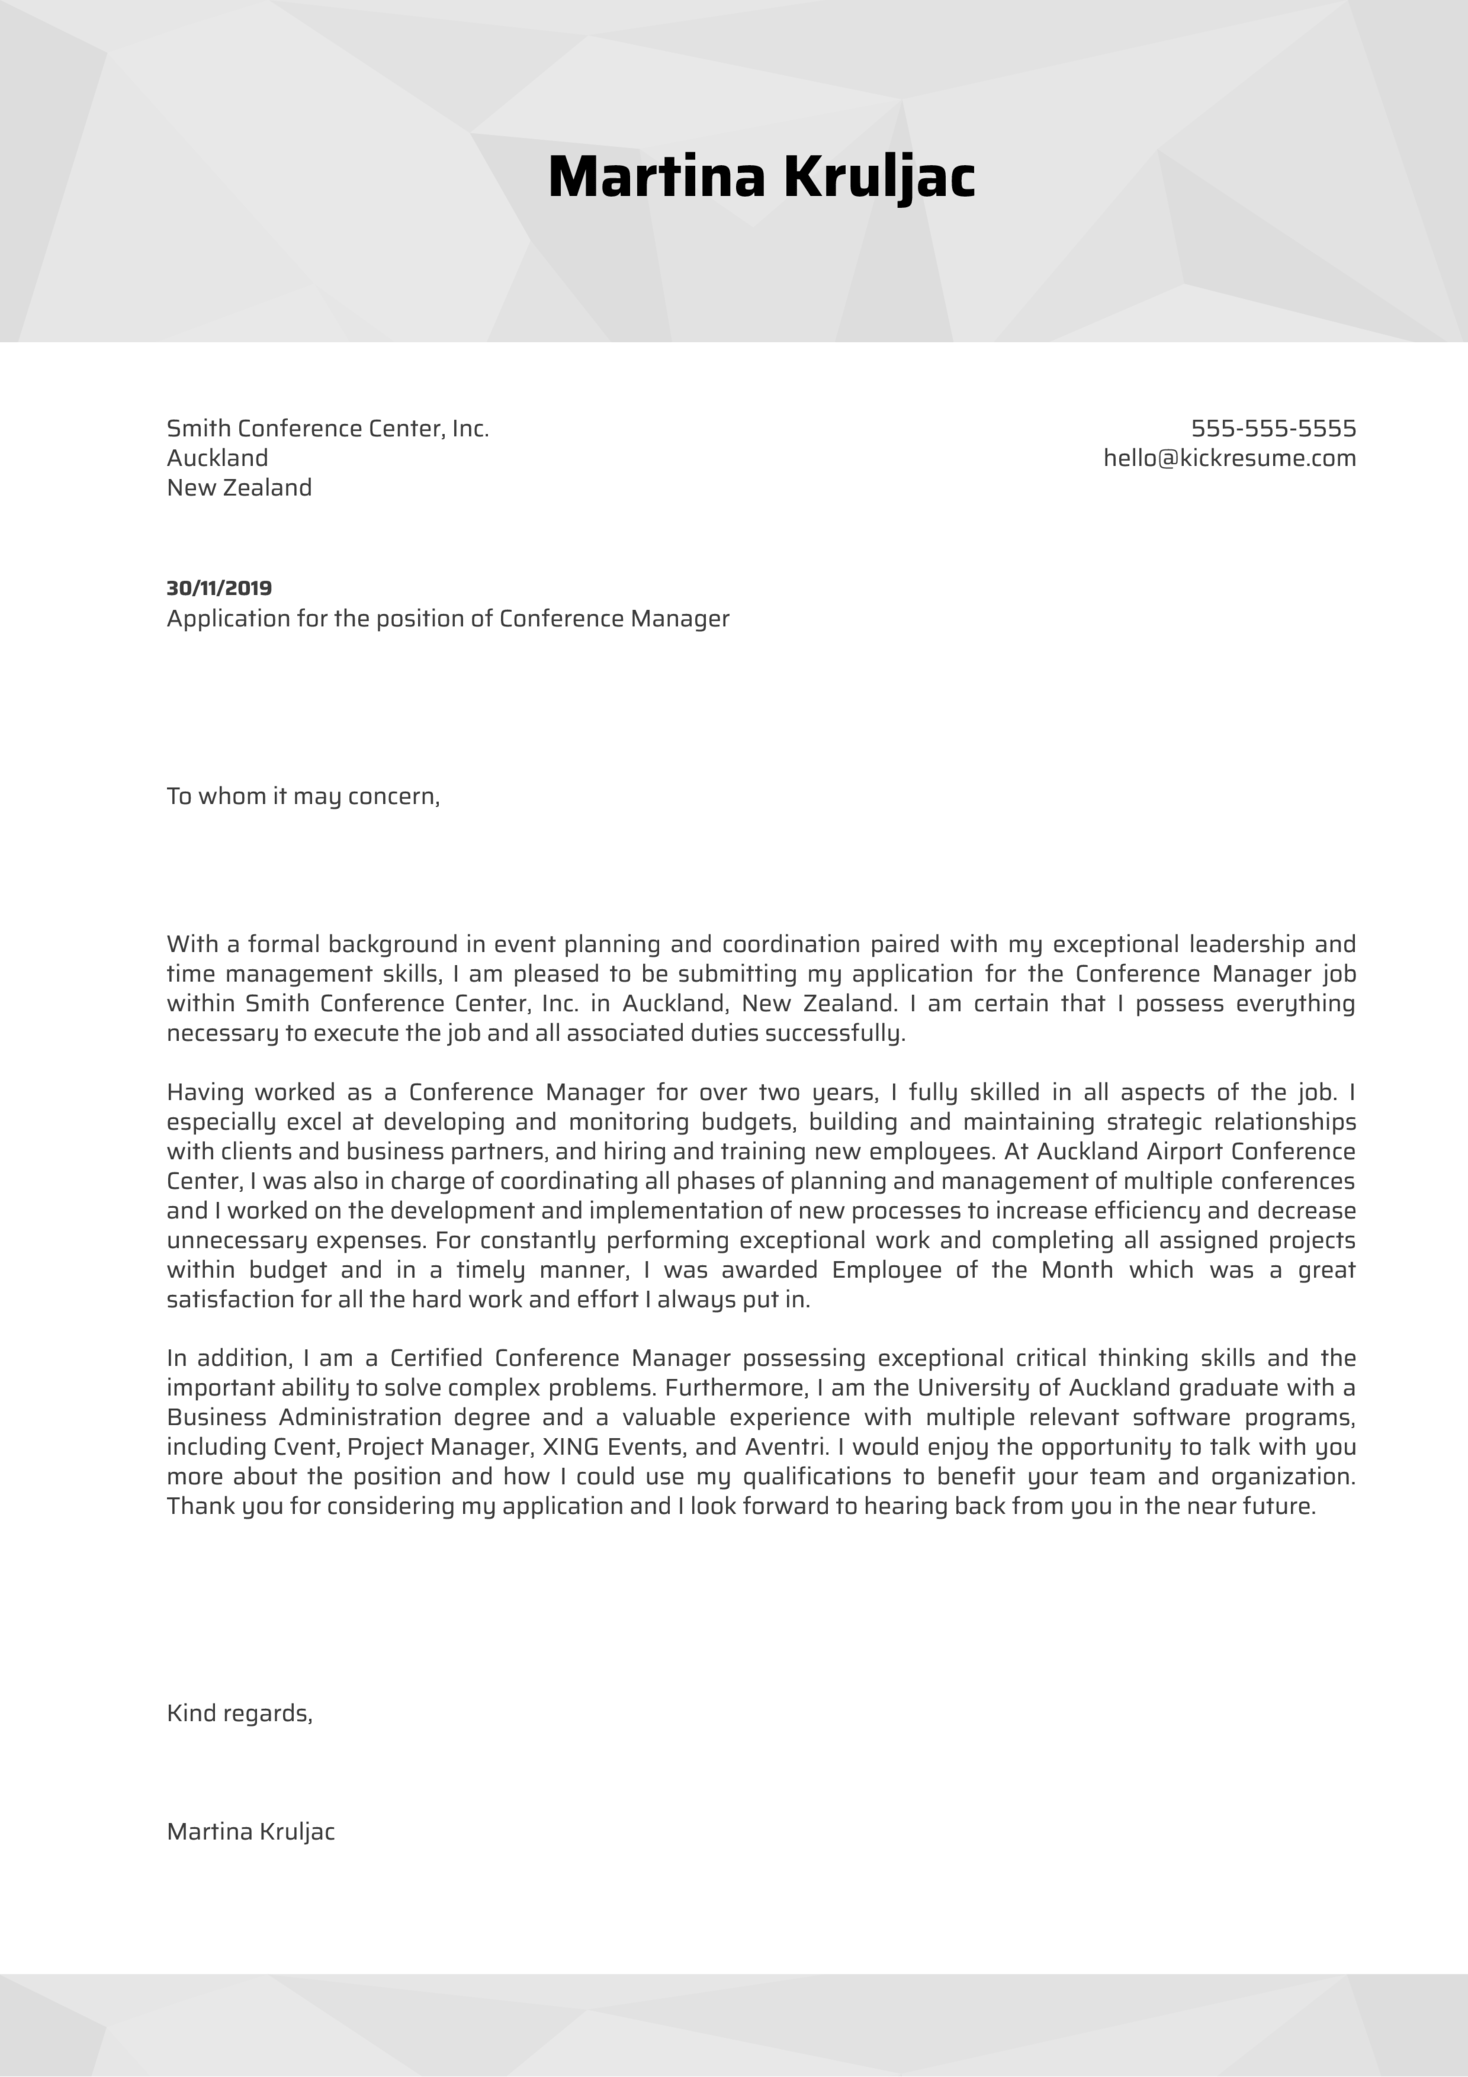 Conference Manager Cover Letter Example